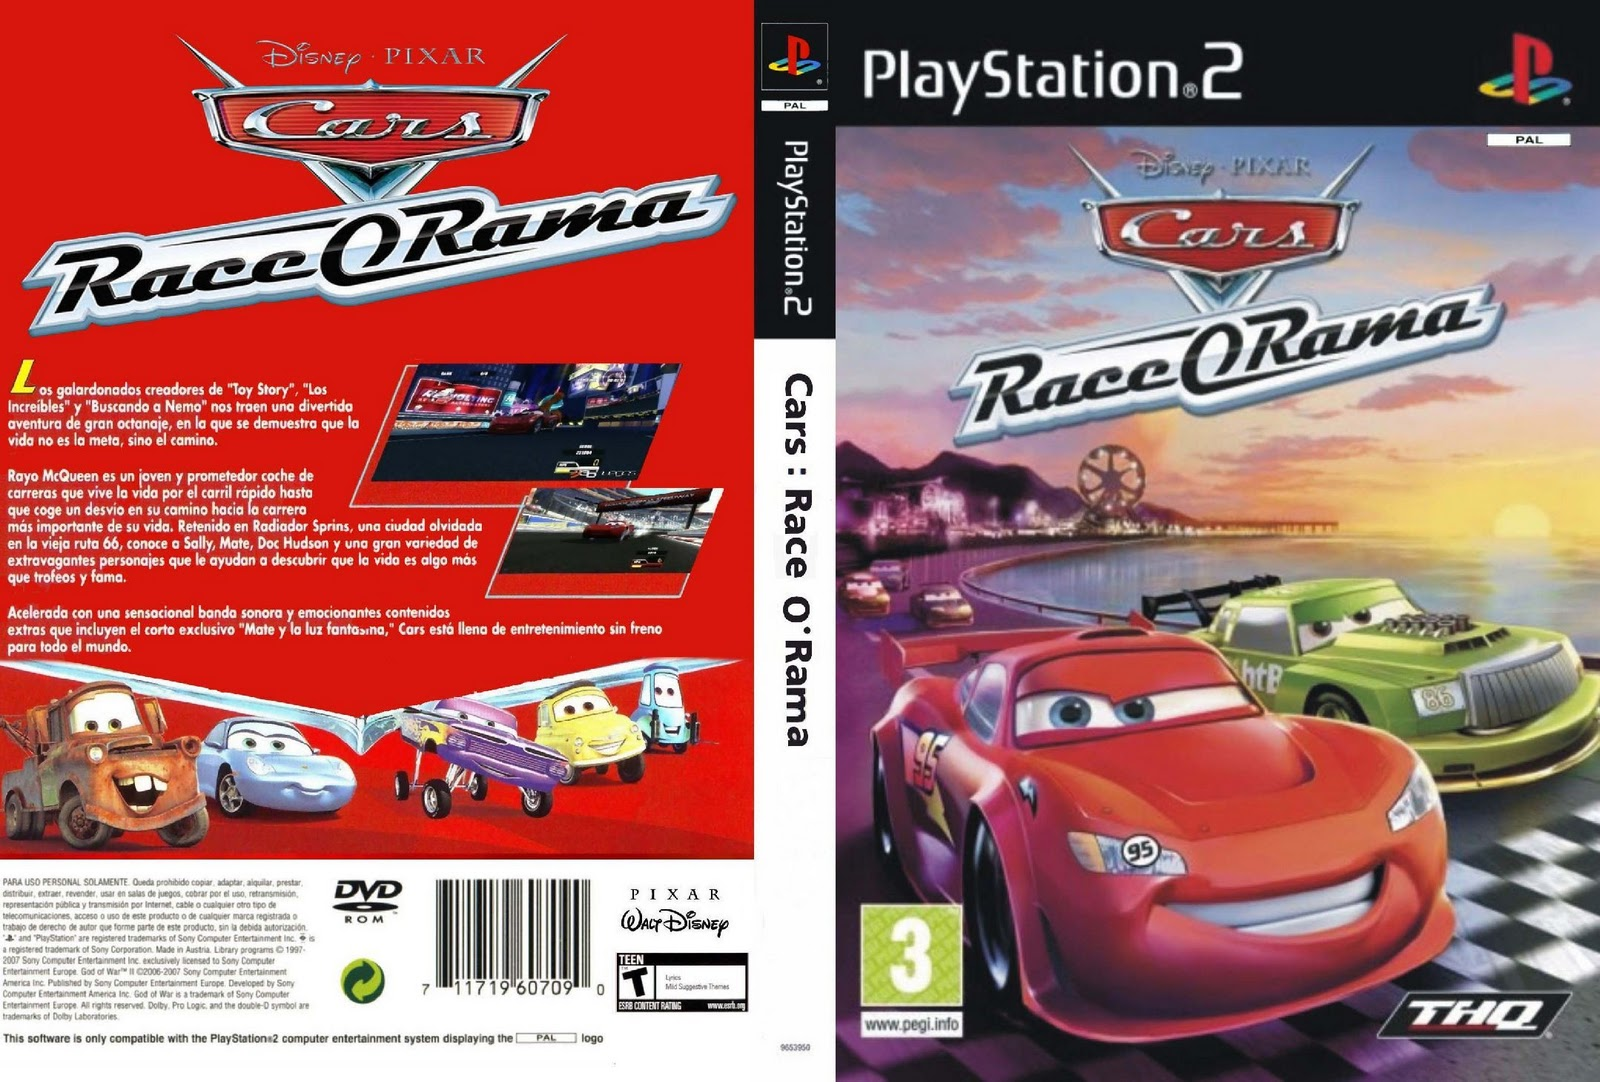 Disney Pixar Cars Race O Rama Europe En Fr De Es It Iso